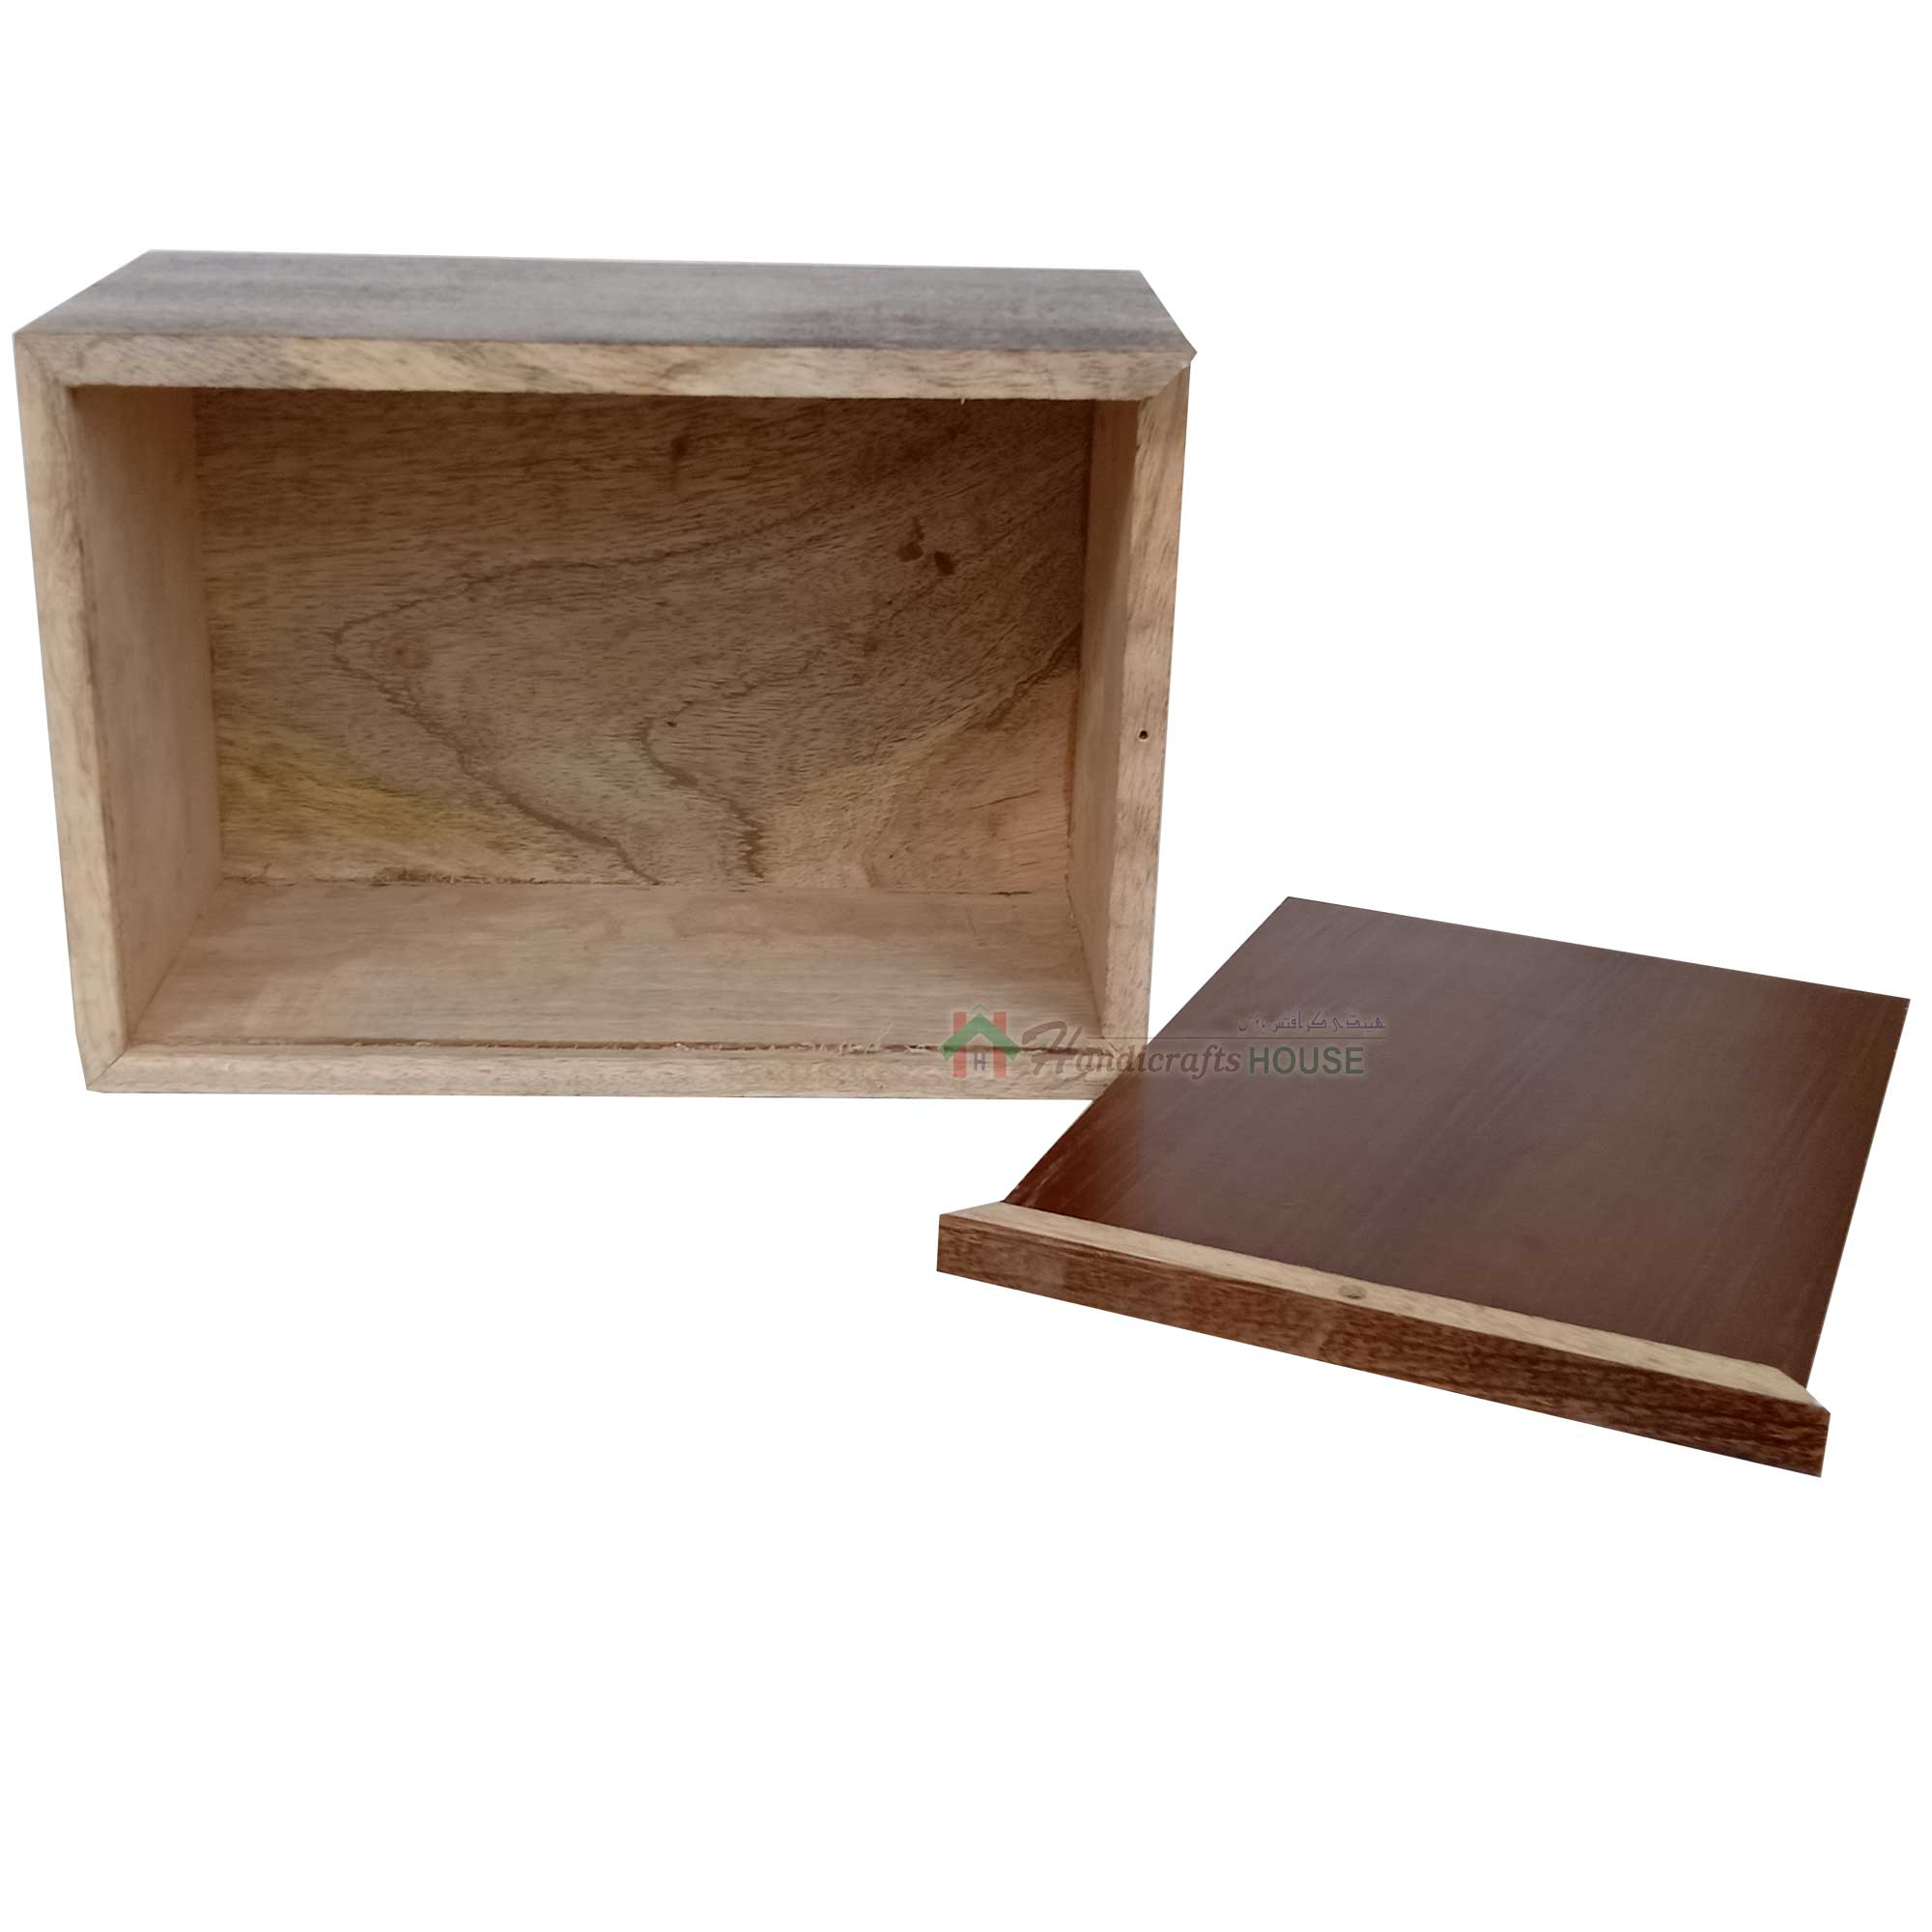 Hands Engraving Rose Flower Wooden Cremation Urns, Wood Funeral Urn for Human or Pet Ashes Adult - Hardwood Memorial Large Box for Loved One